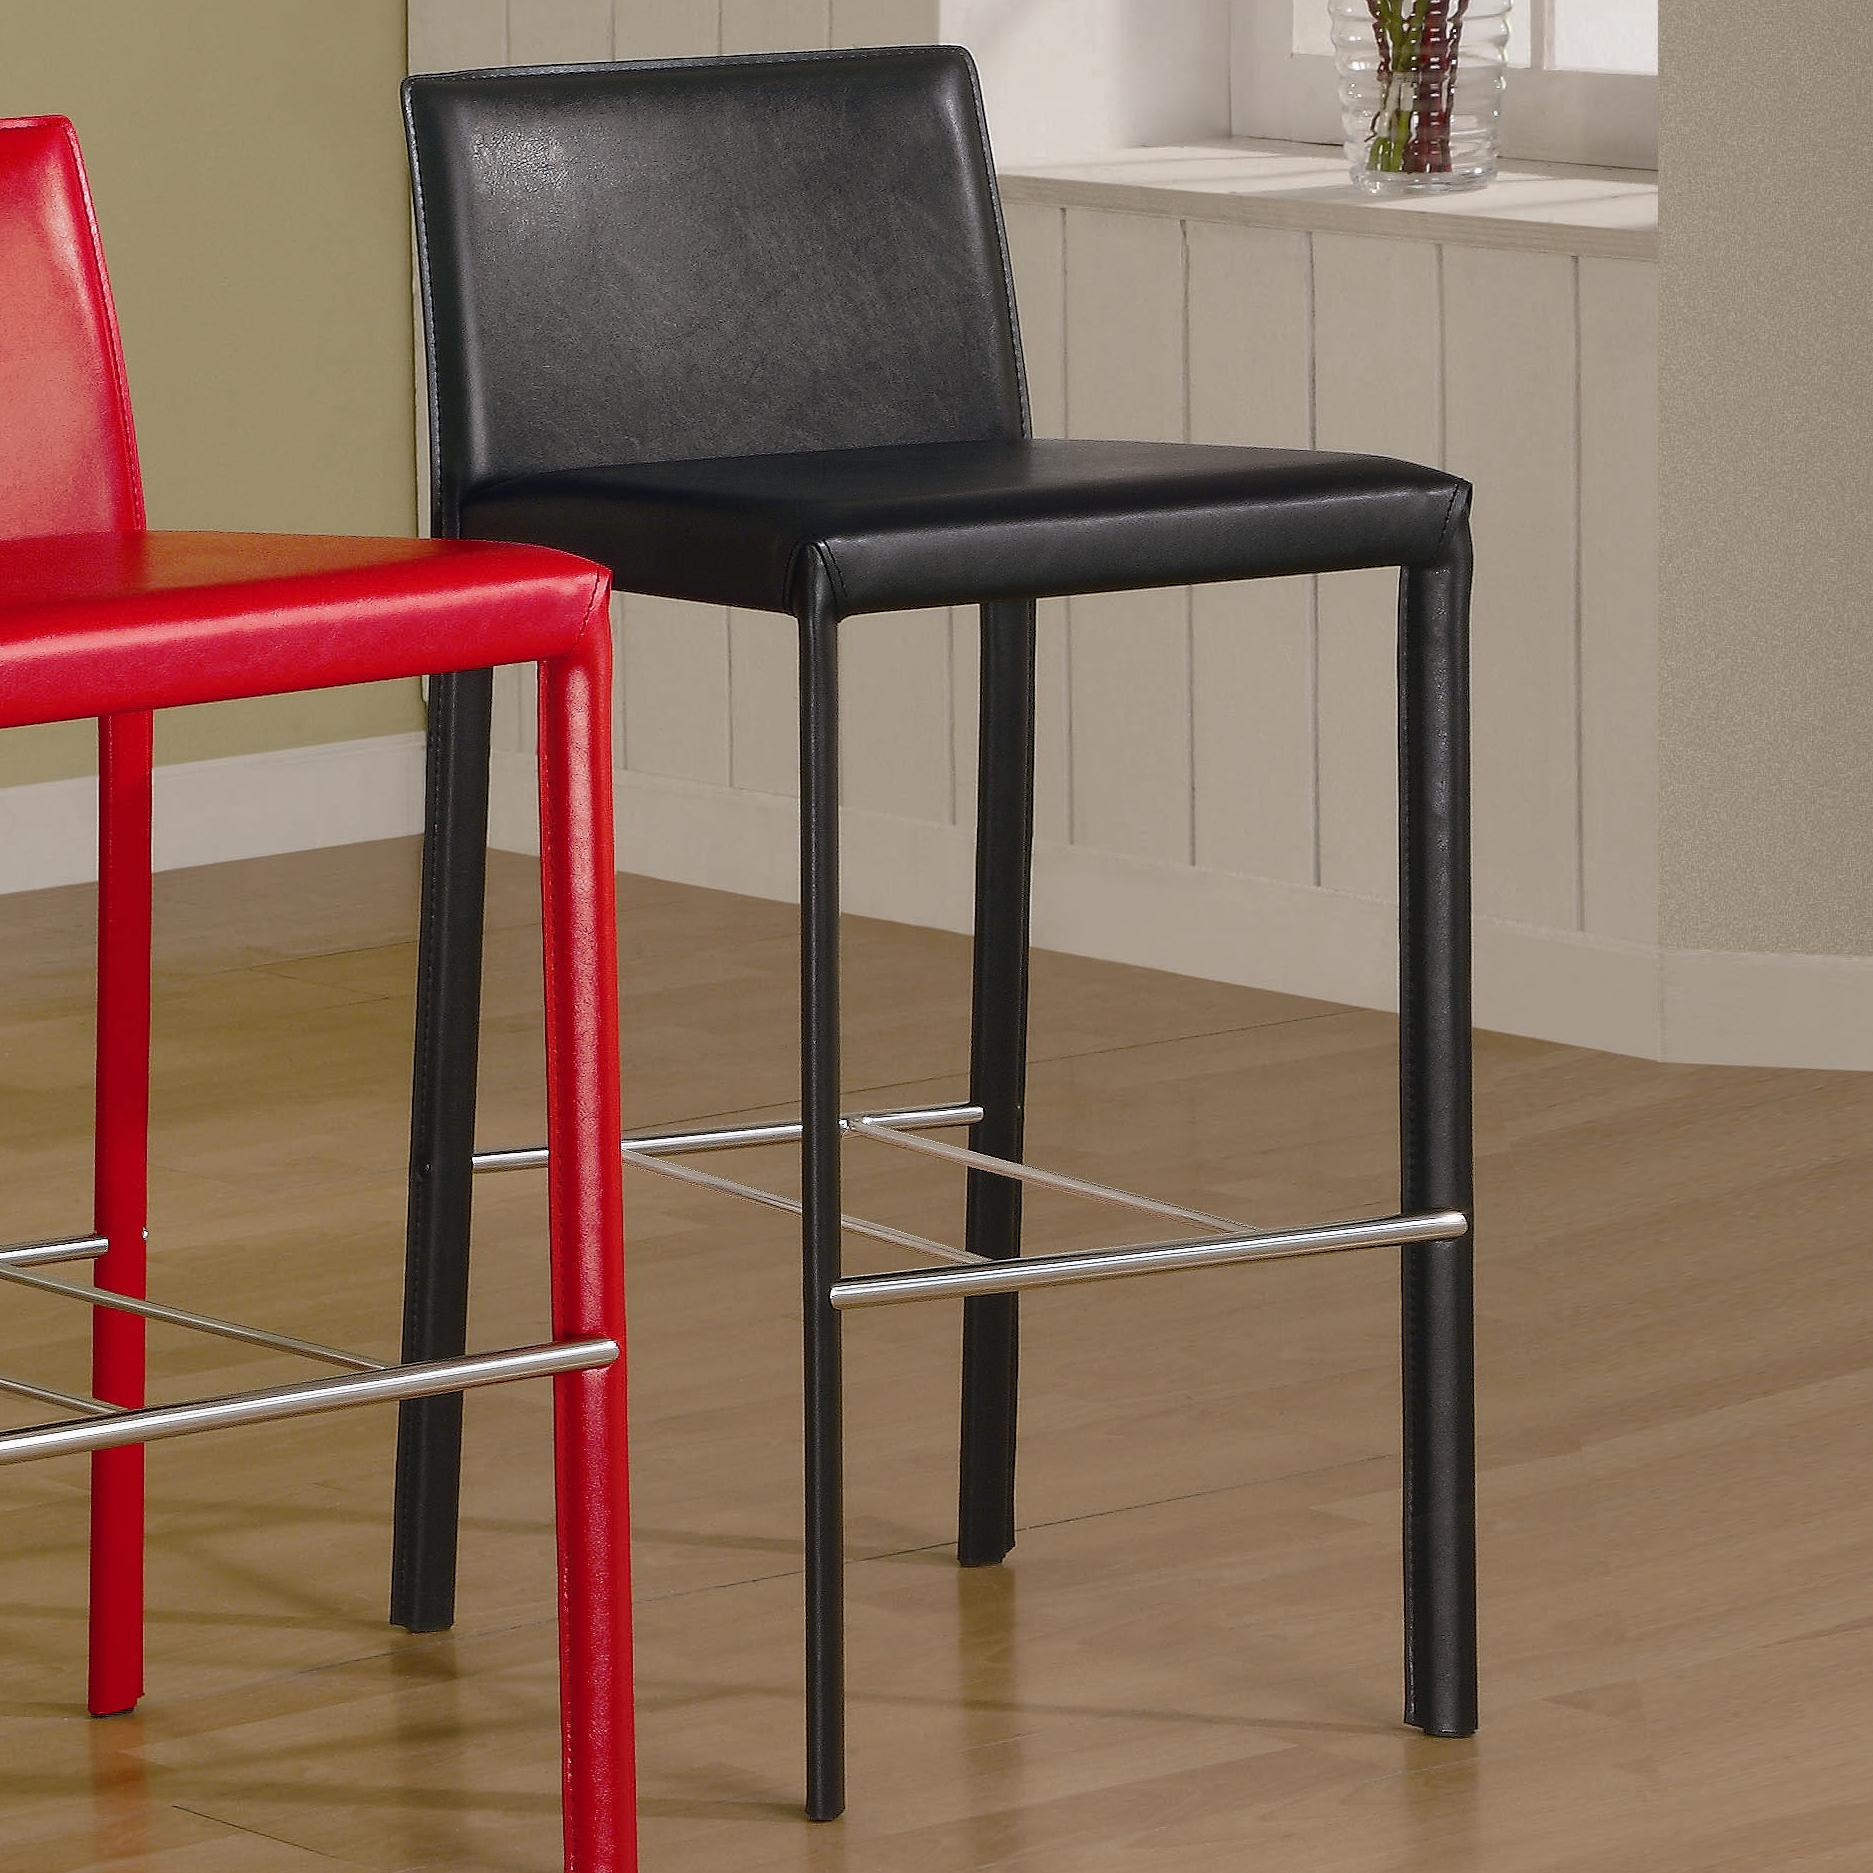 dining chairs and bar stools 29 bana home decors